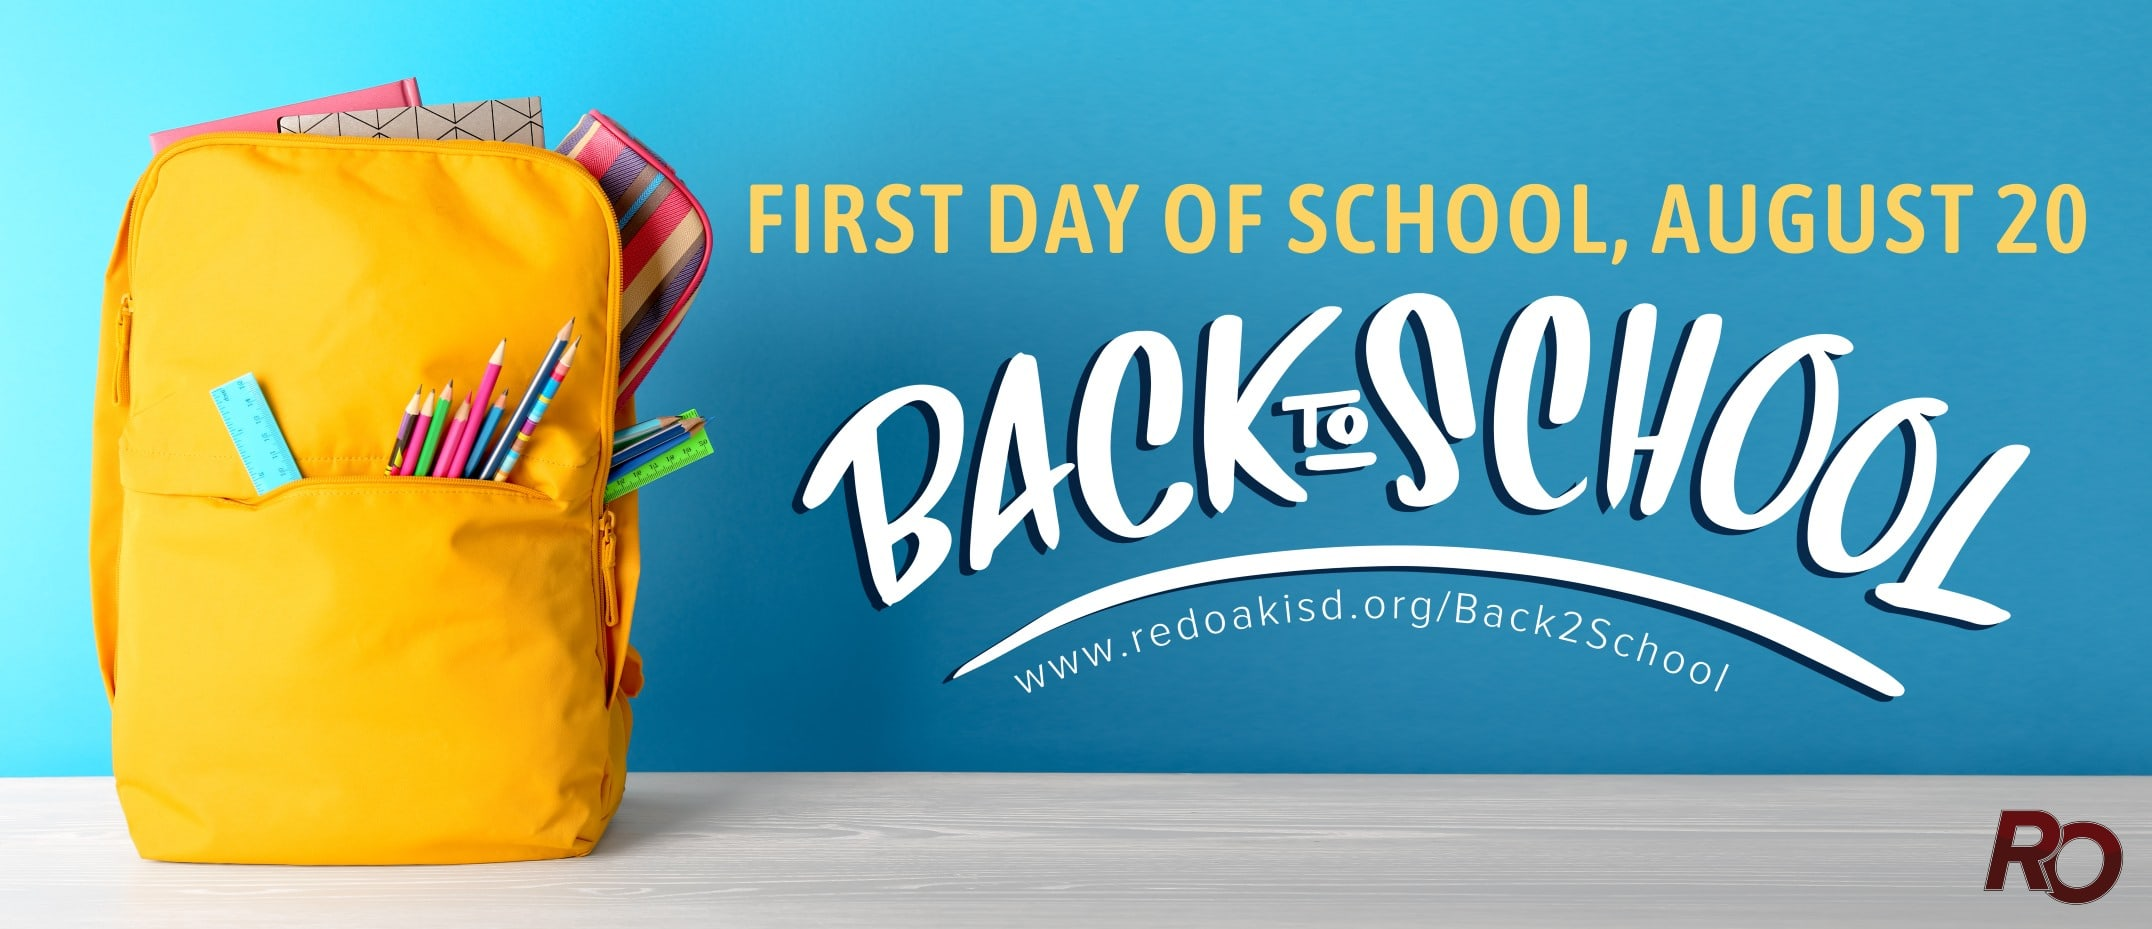 Red Oak ISD back to school graphic